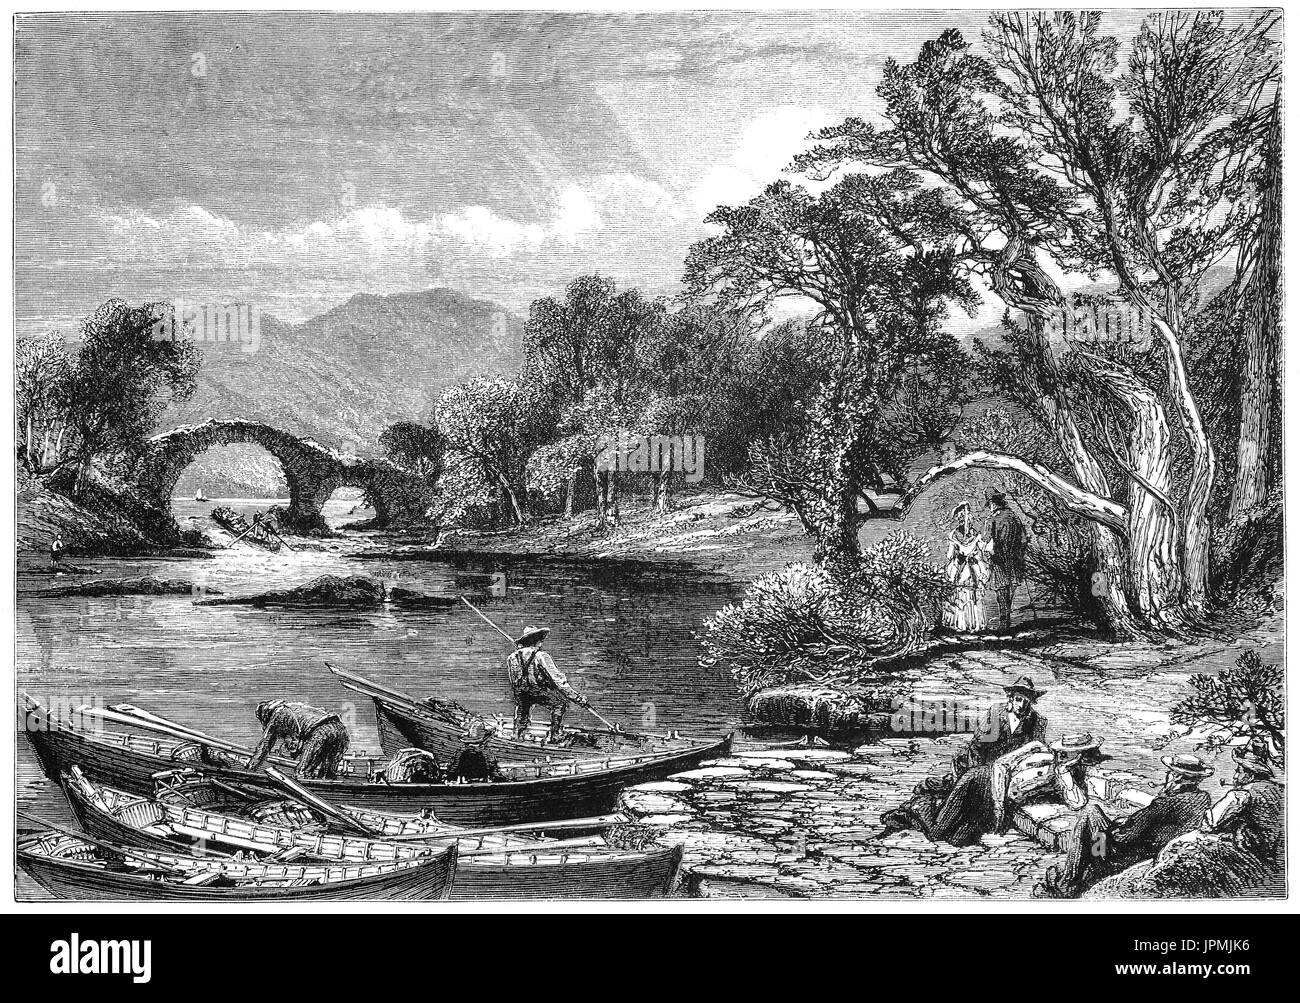 1870: Boatmen near the Old Weir Bridge believed to date back to the sixteenth century  at the spot known as the 'Meeting of the Waters', where the three Killarney lakes meet. The waters from the Upper Lake flow into the Middle (or Muckross Lake) and Lough Leane.  Killarney National Park, County Kerry, Ireland. - Stock Image